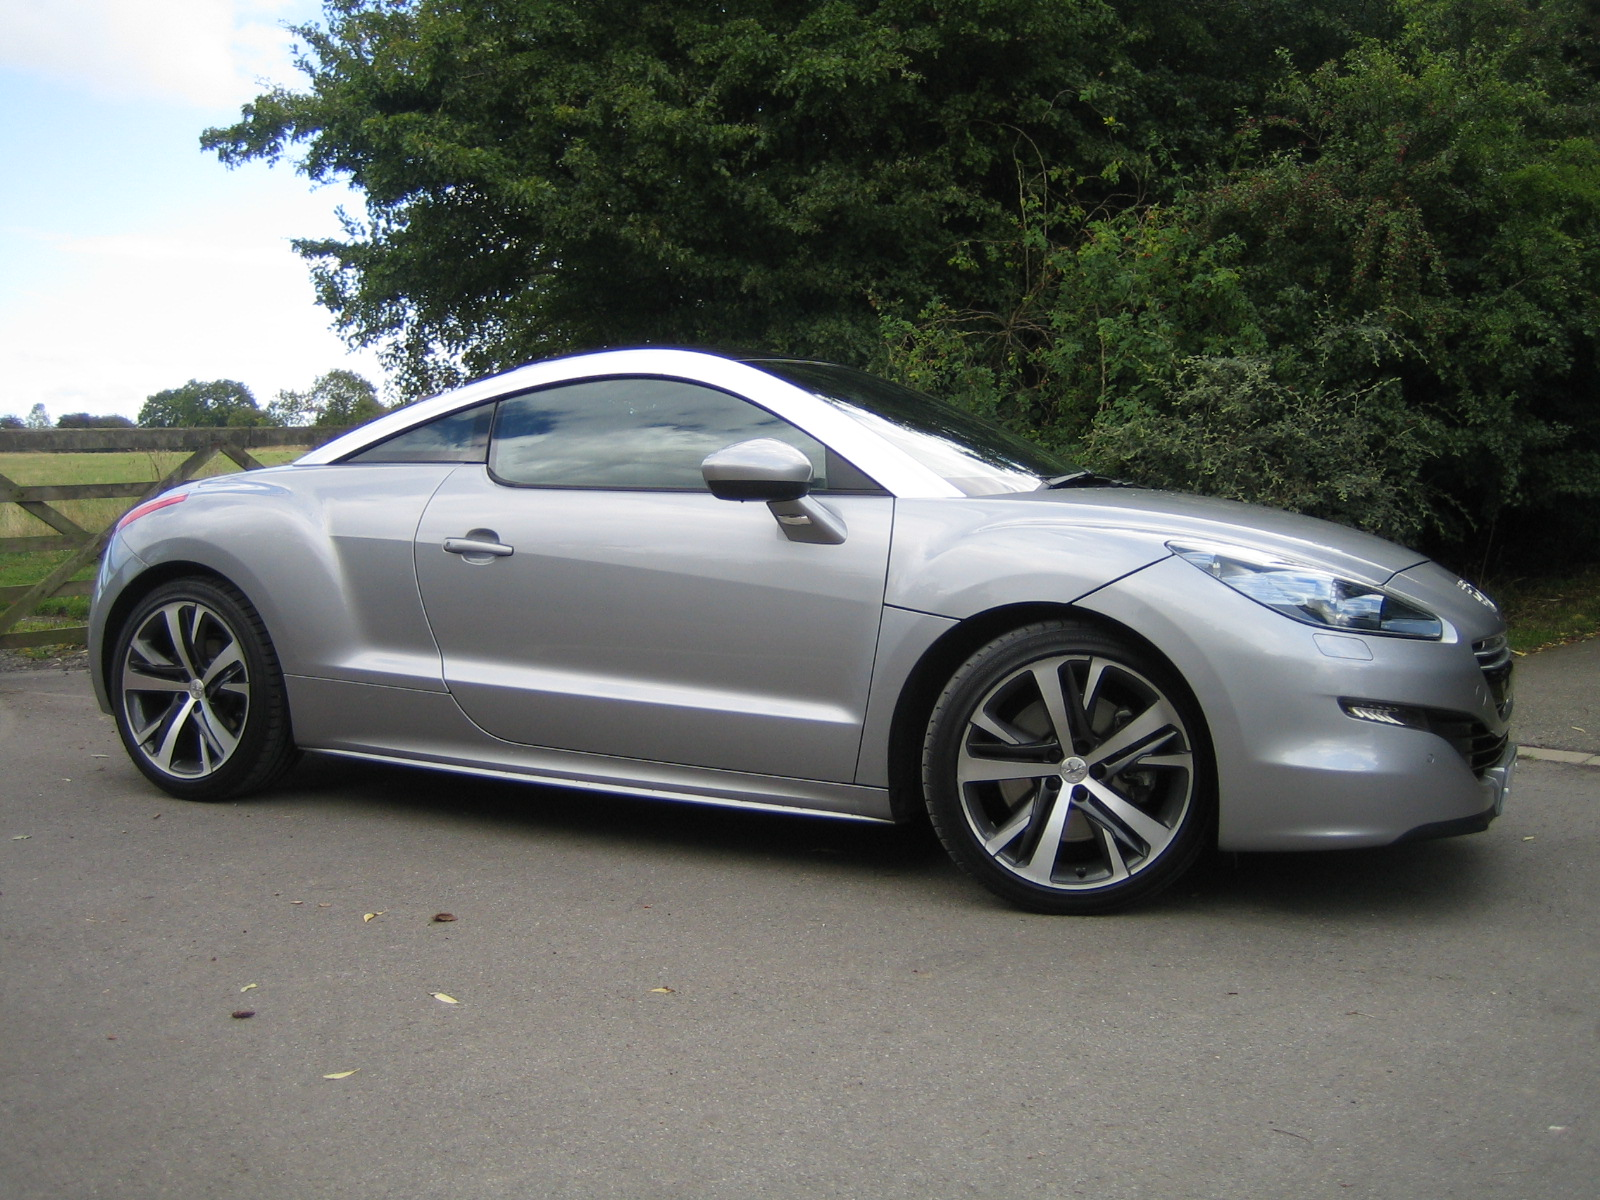 road test report and review peugeot rcz gt thp 200. Black Bedroom Furniture Sets. Home Design Ideas